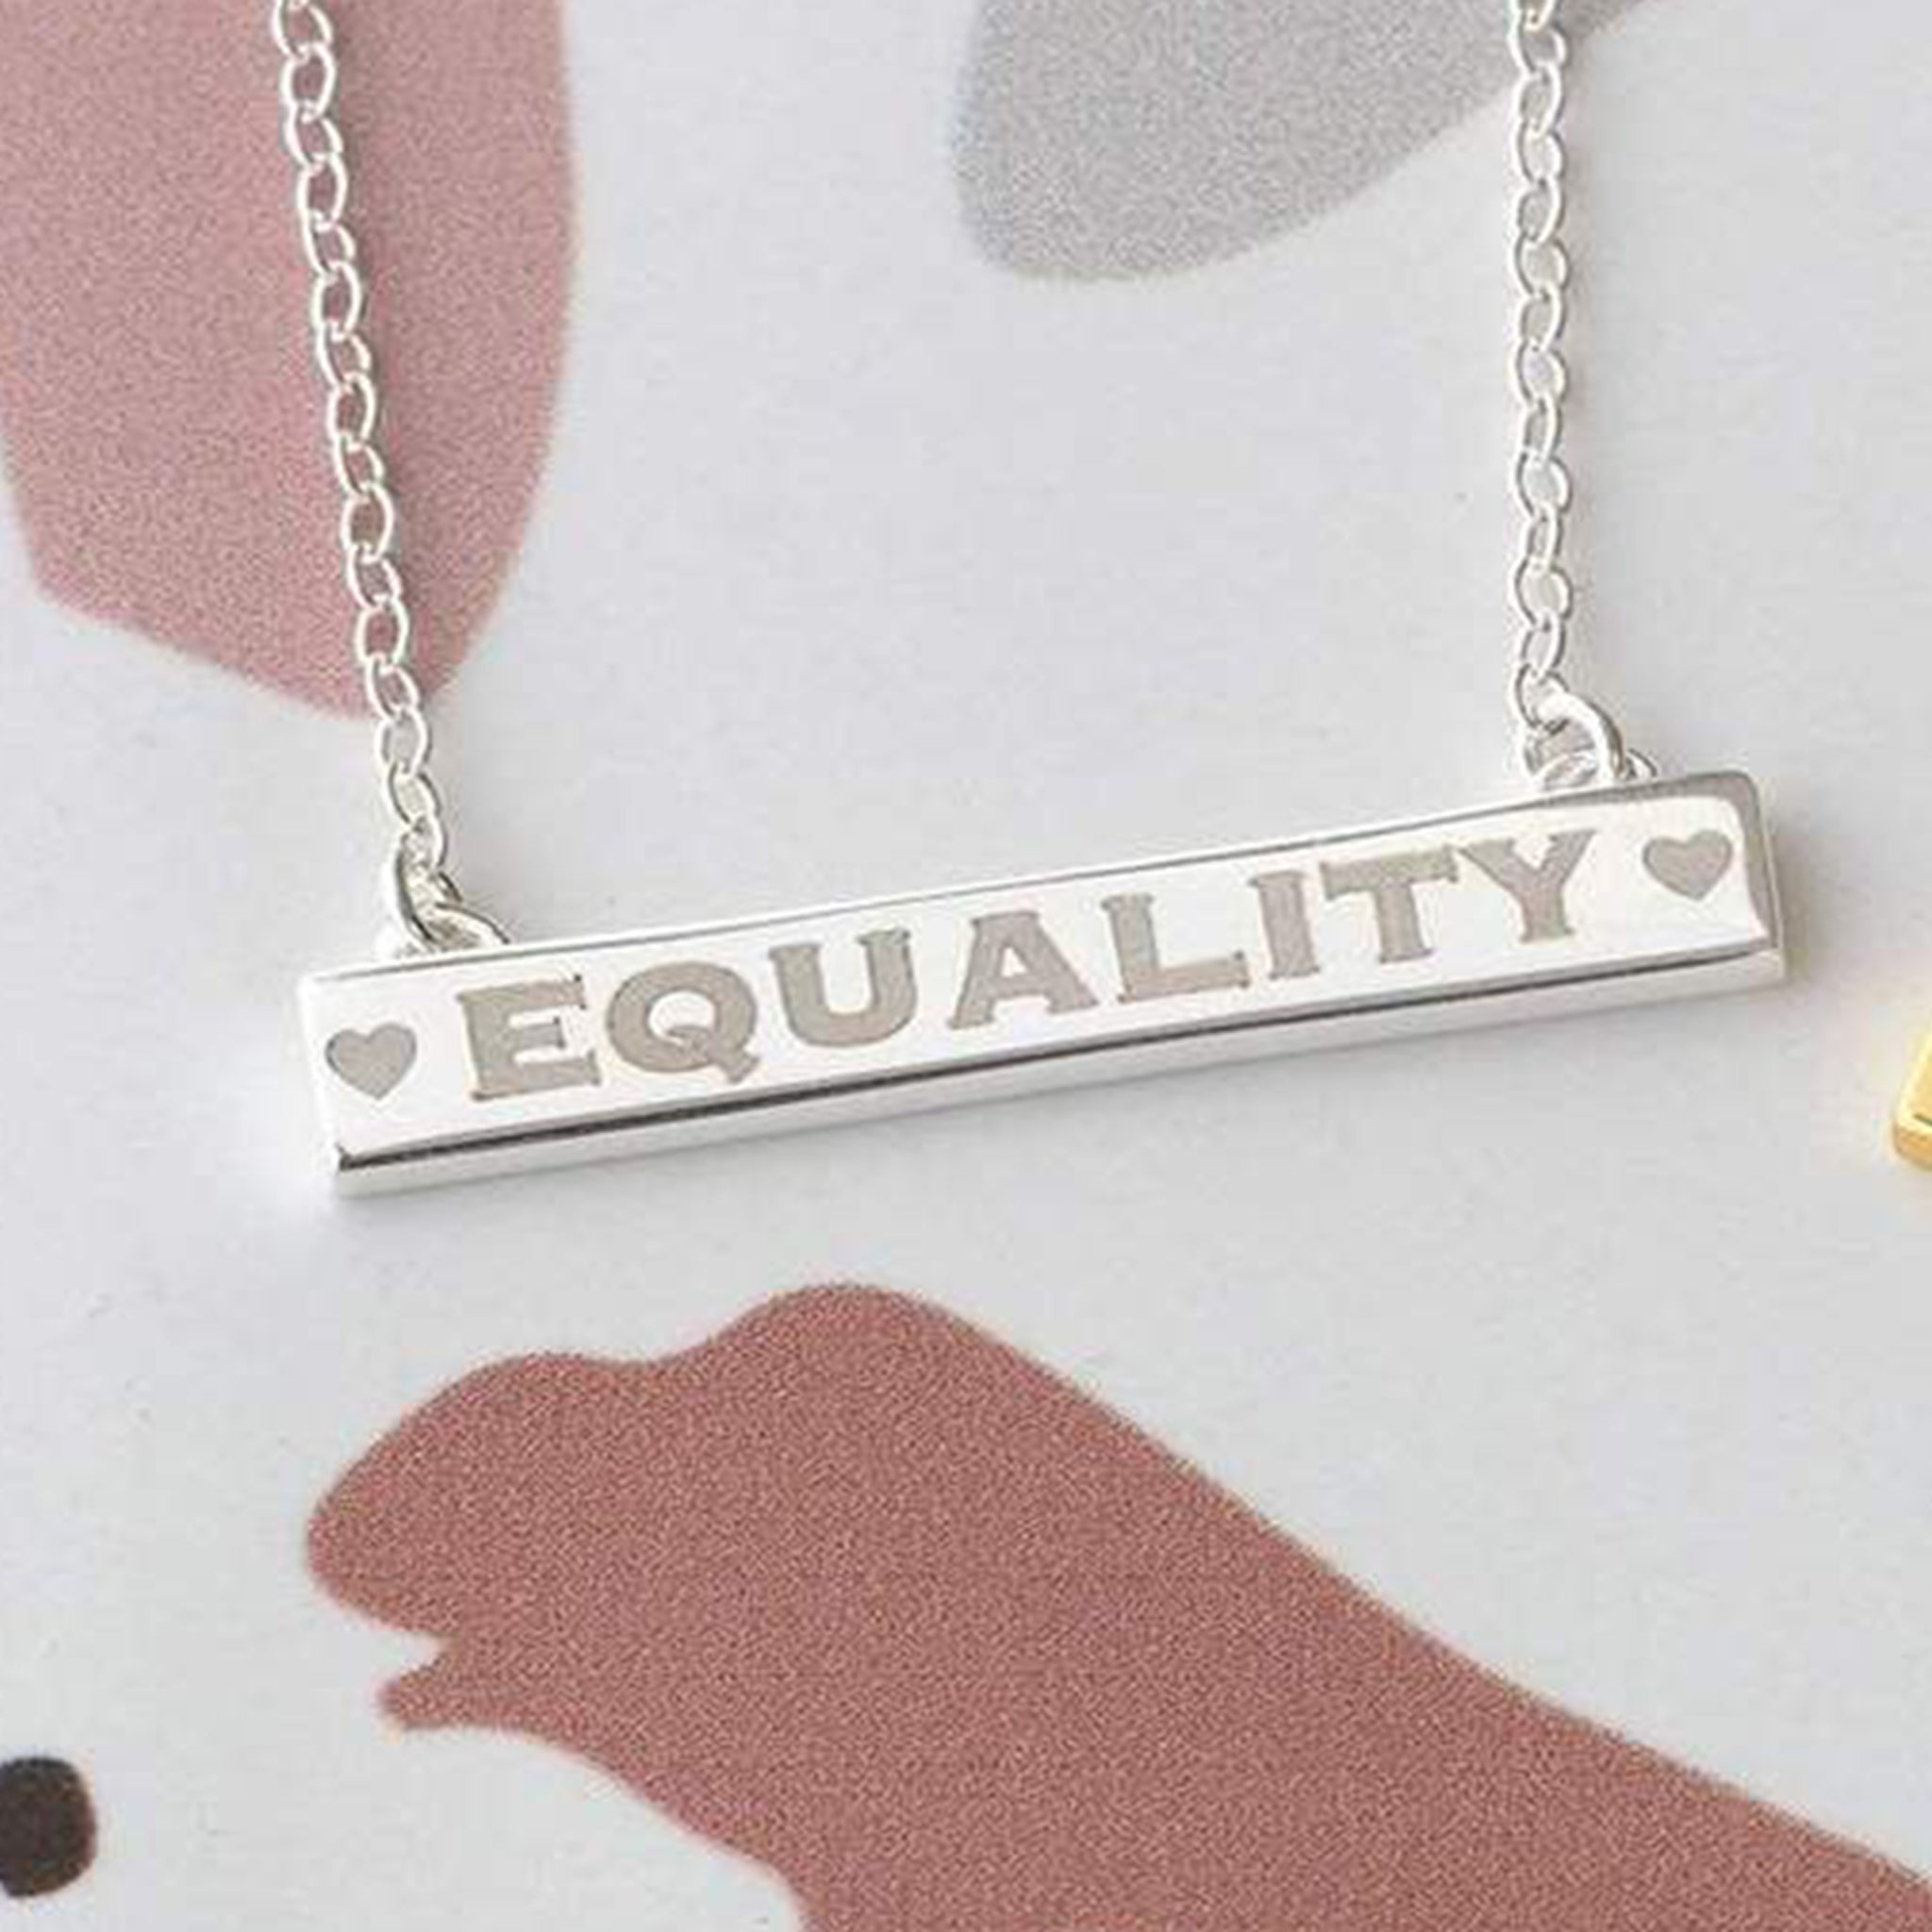 Equality Bar Necklace - Blackbird General Store